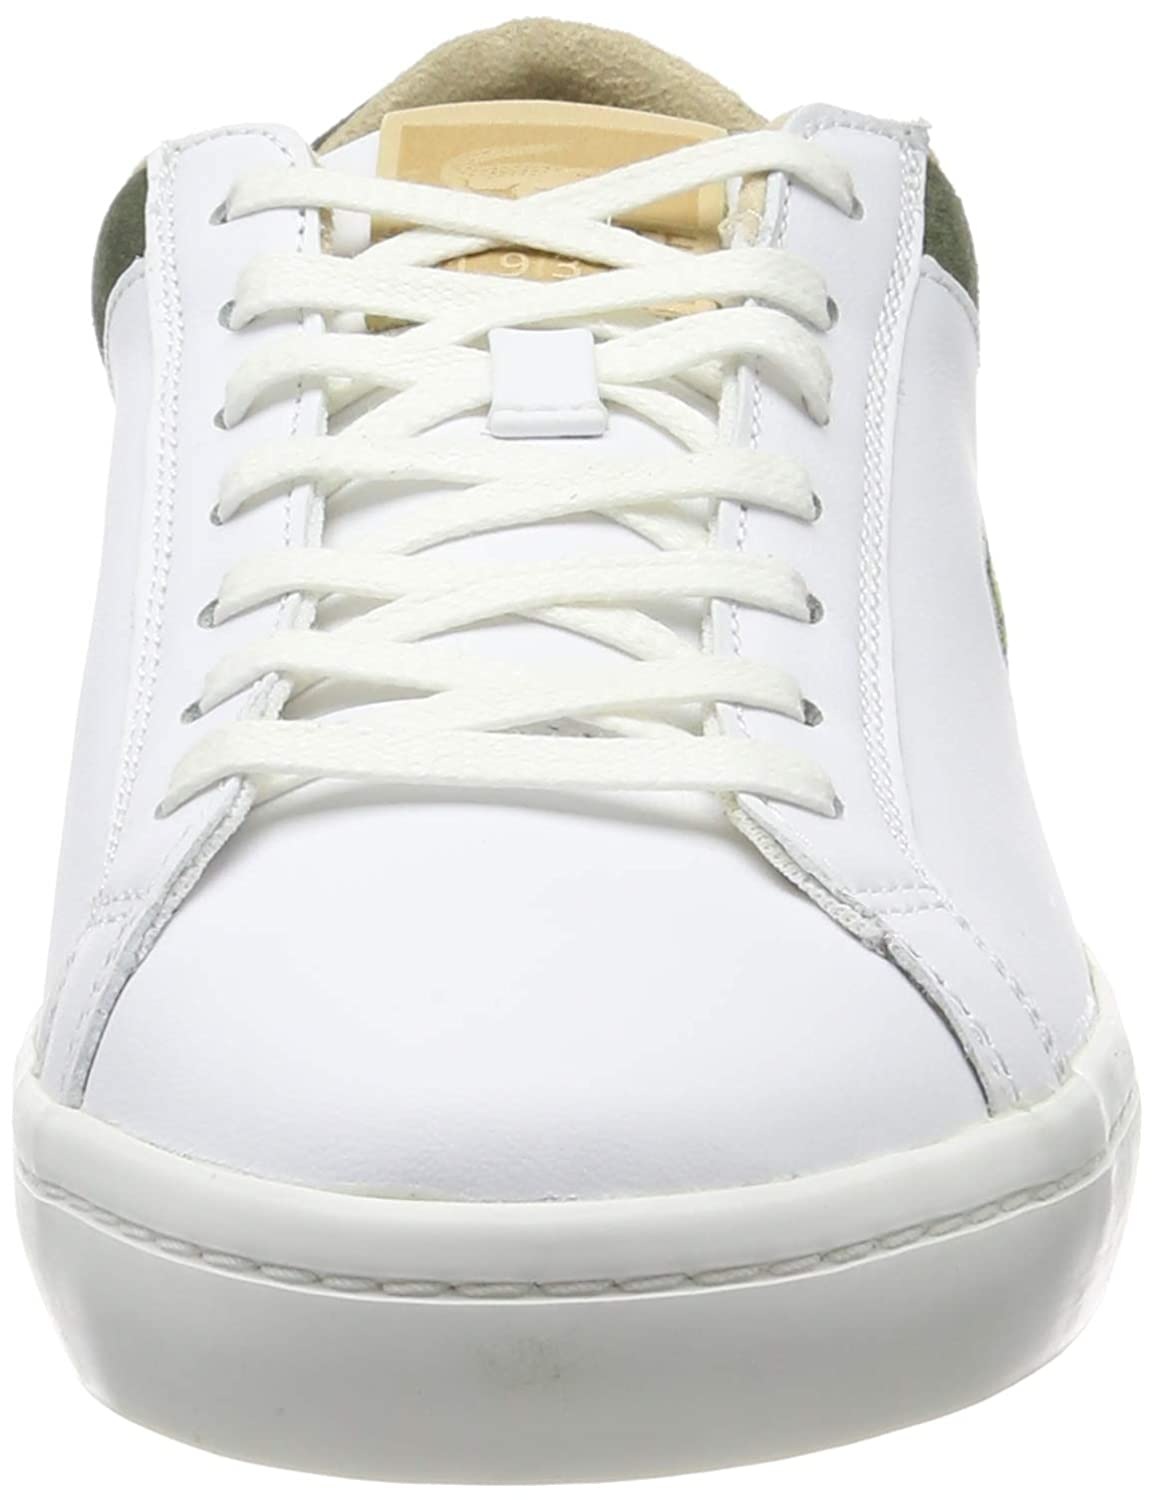 00bb7ab52a Lacoste Baskets Straightset H Lux Blanc Homme: Lacoste: Amazon.fr:  Chaussures et Sacs